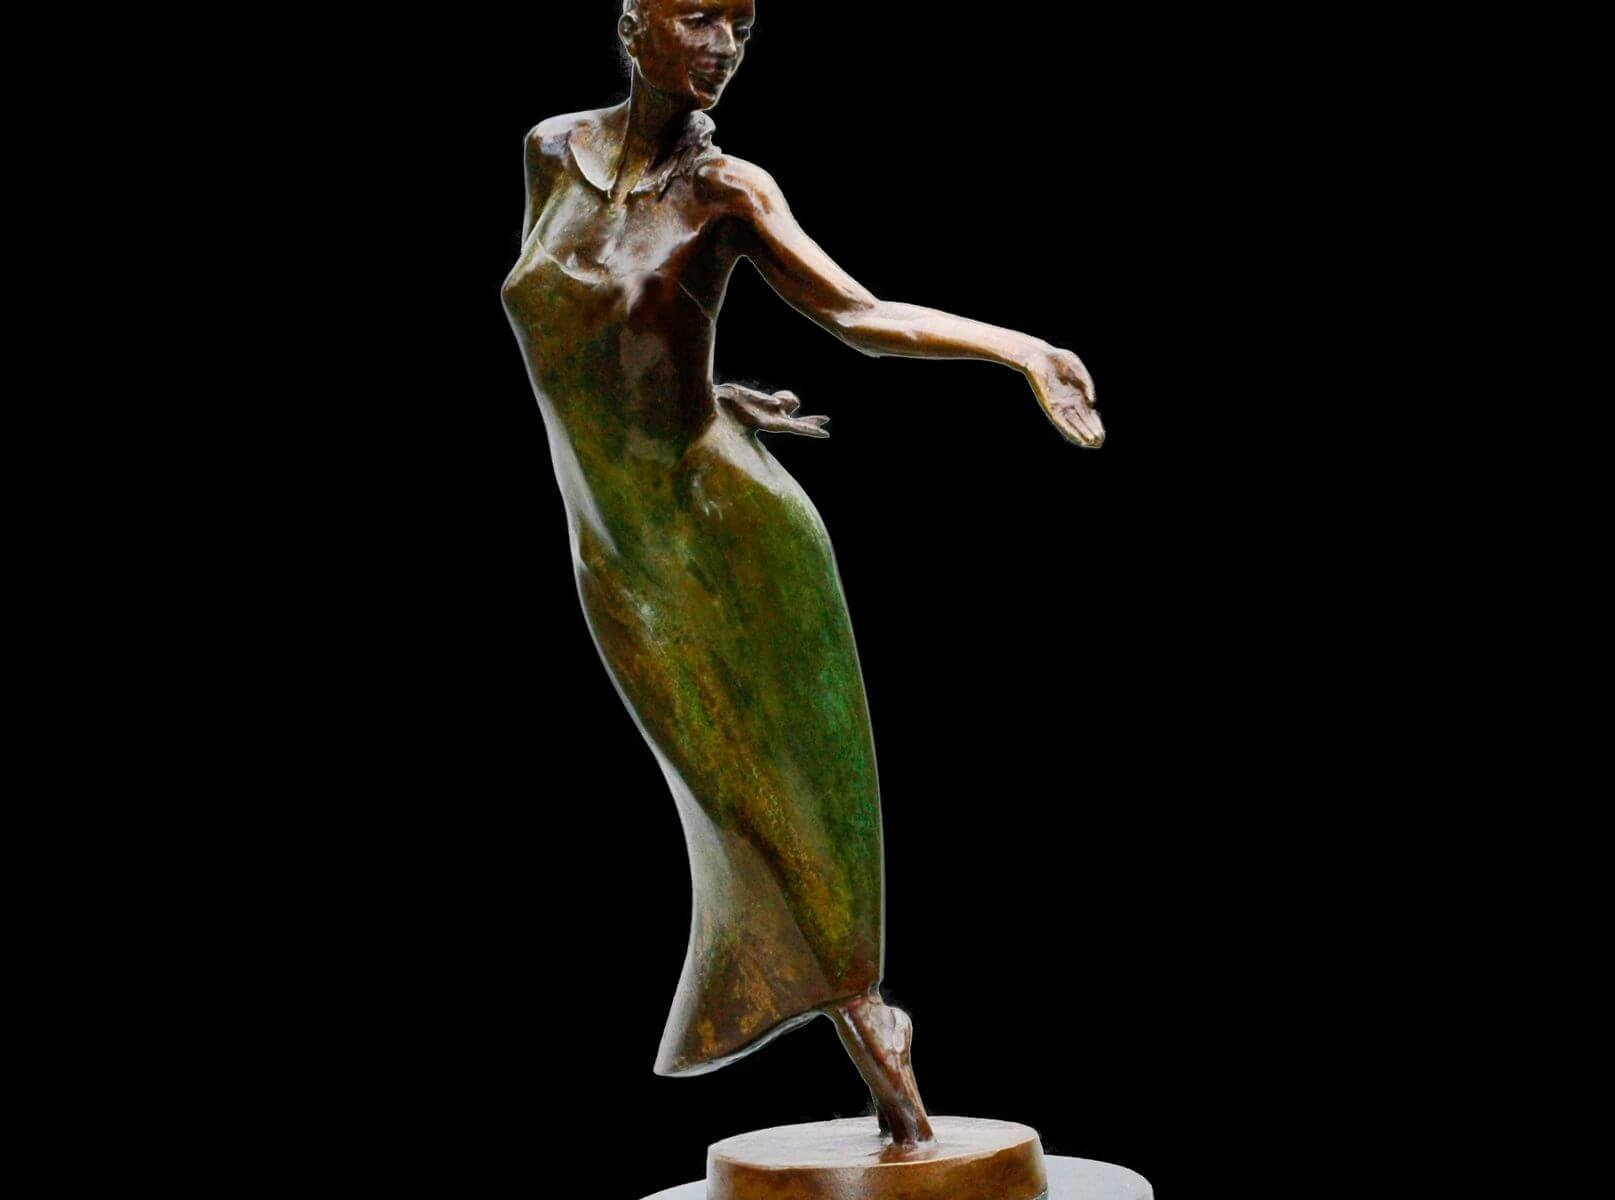 Nocturne a small figurative ballet bronze dance sculpture by Andrew DeVries